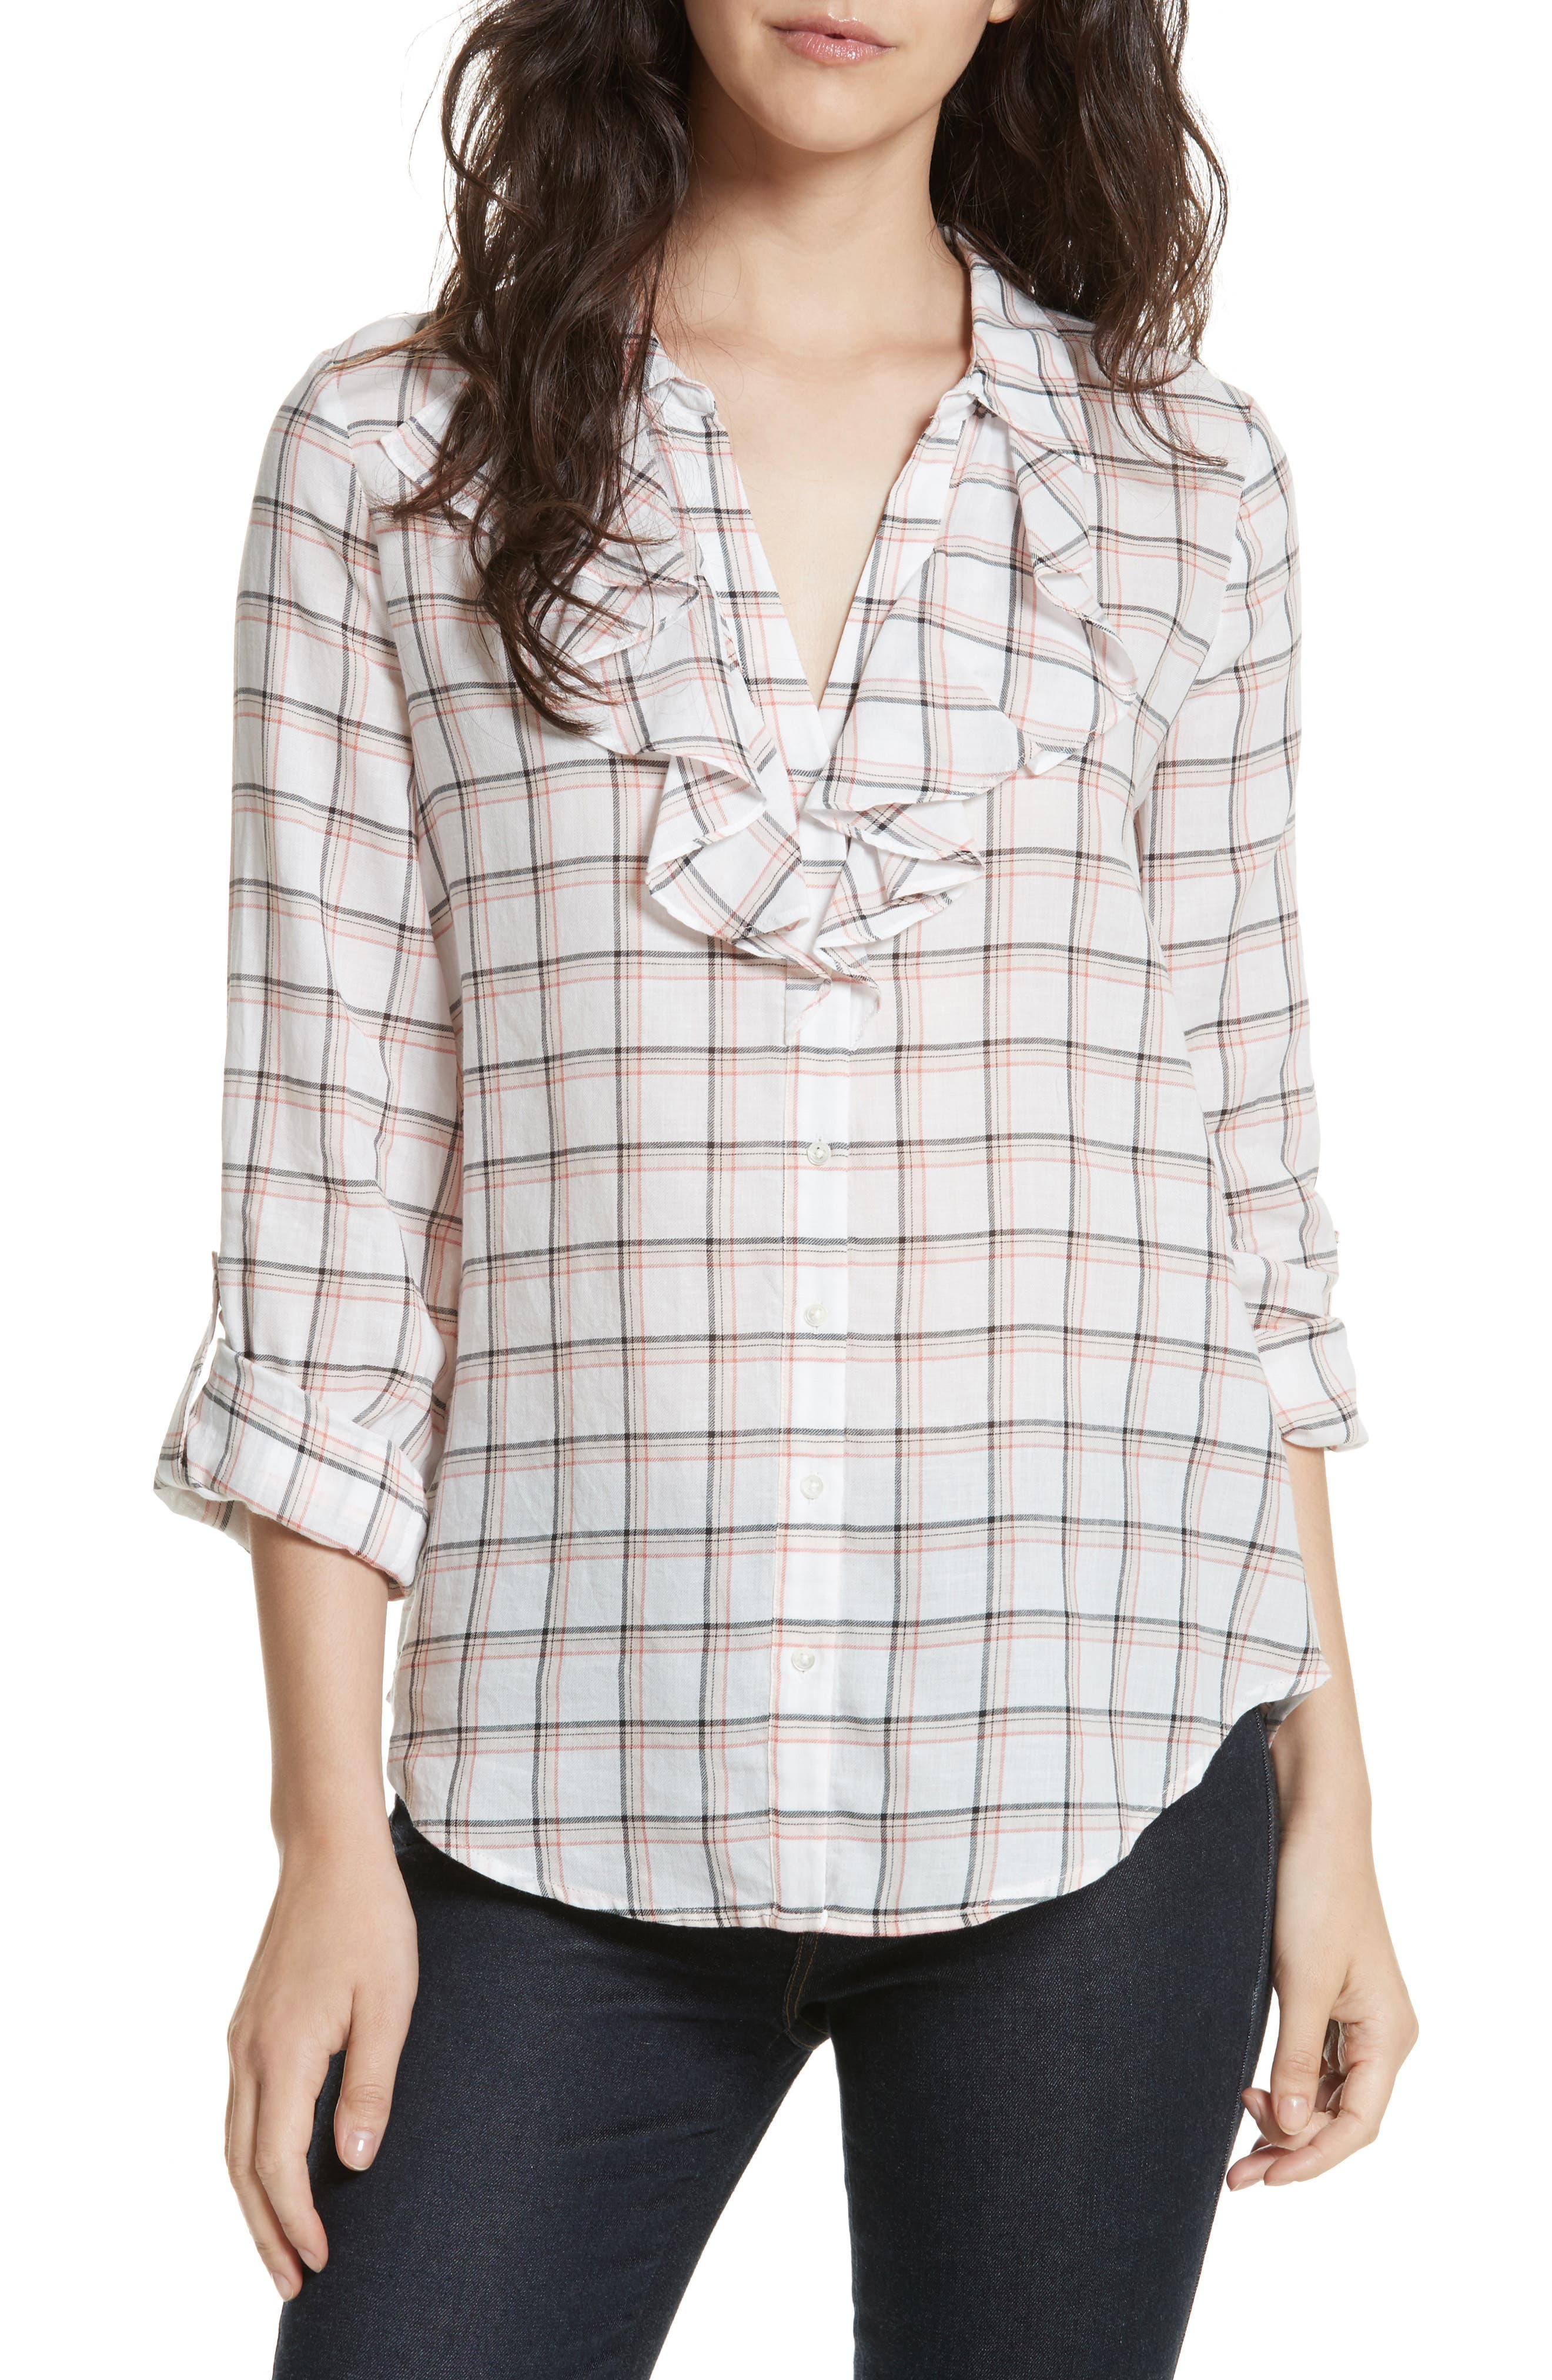 Joie Fara Plaid Top